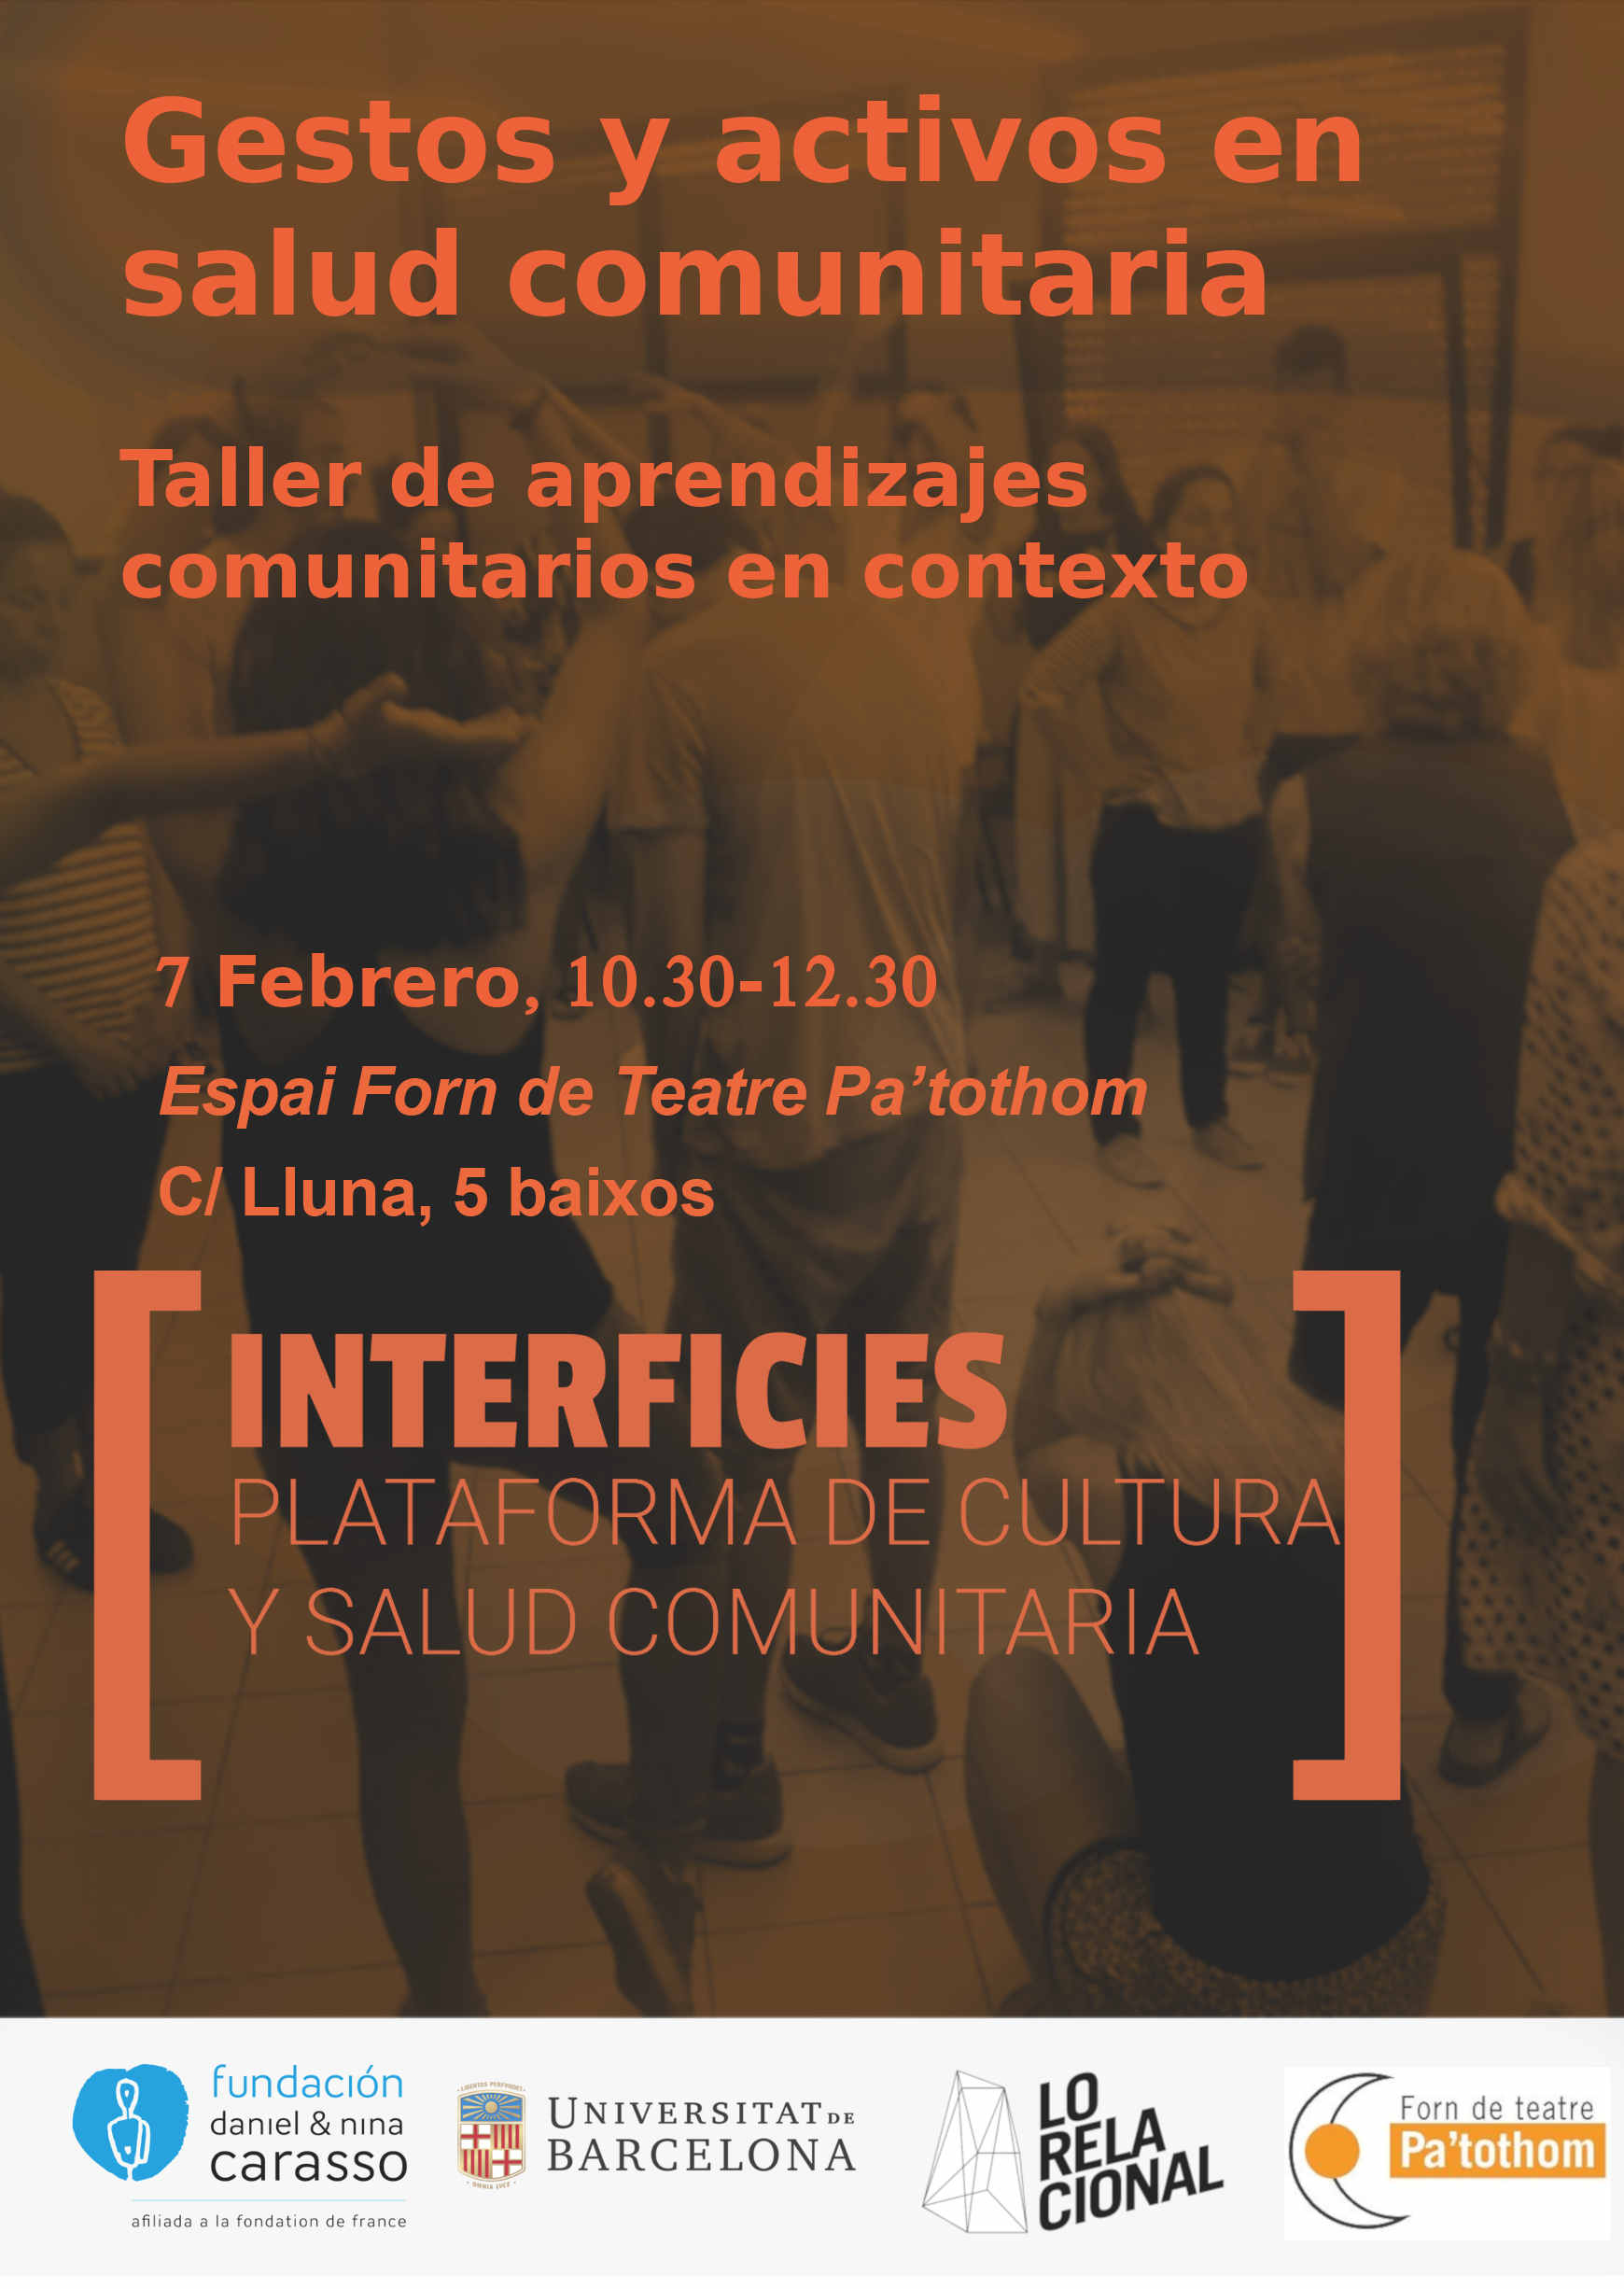 interficies_taller 7 febrero_2019_ gestos saludables